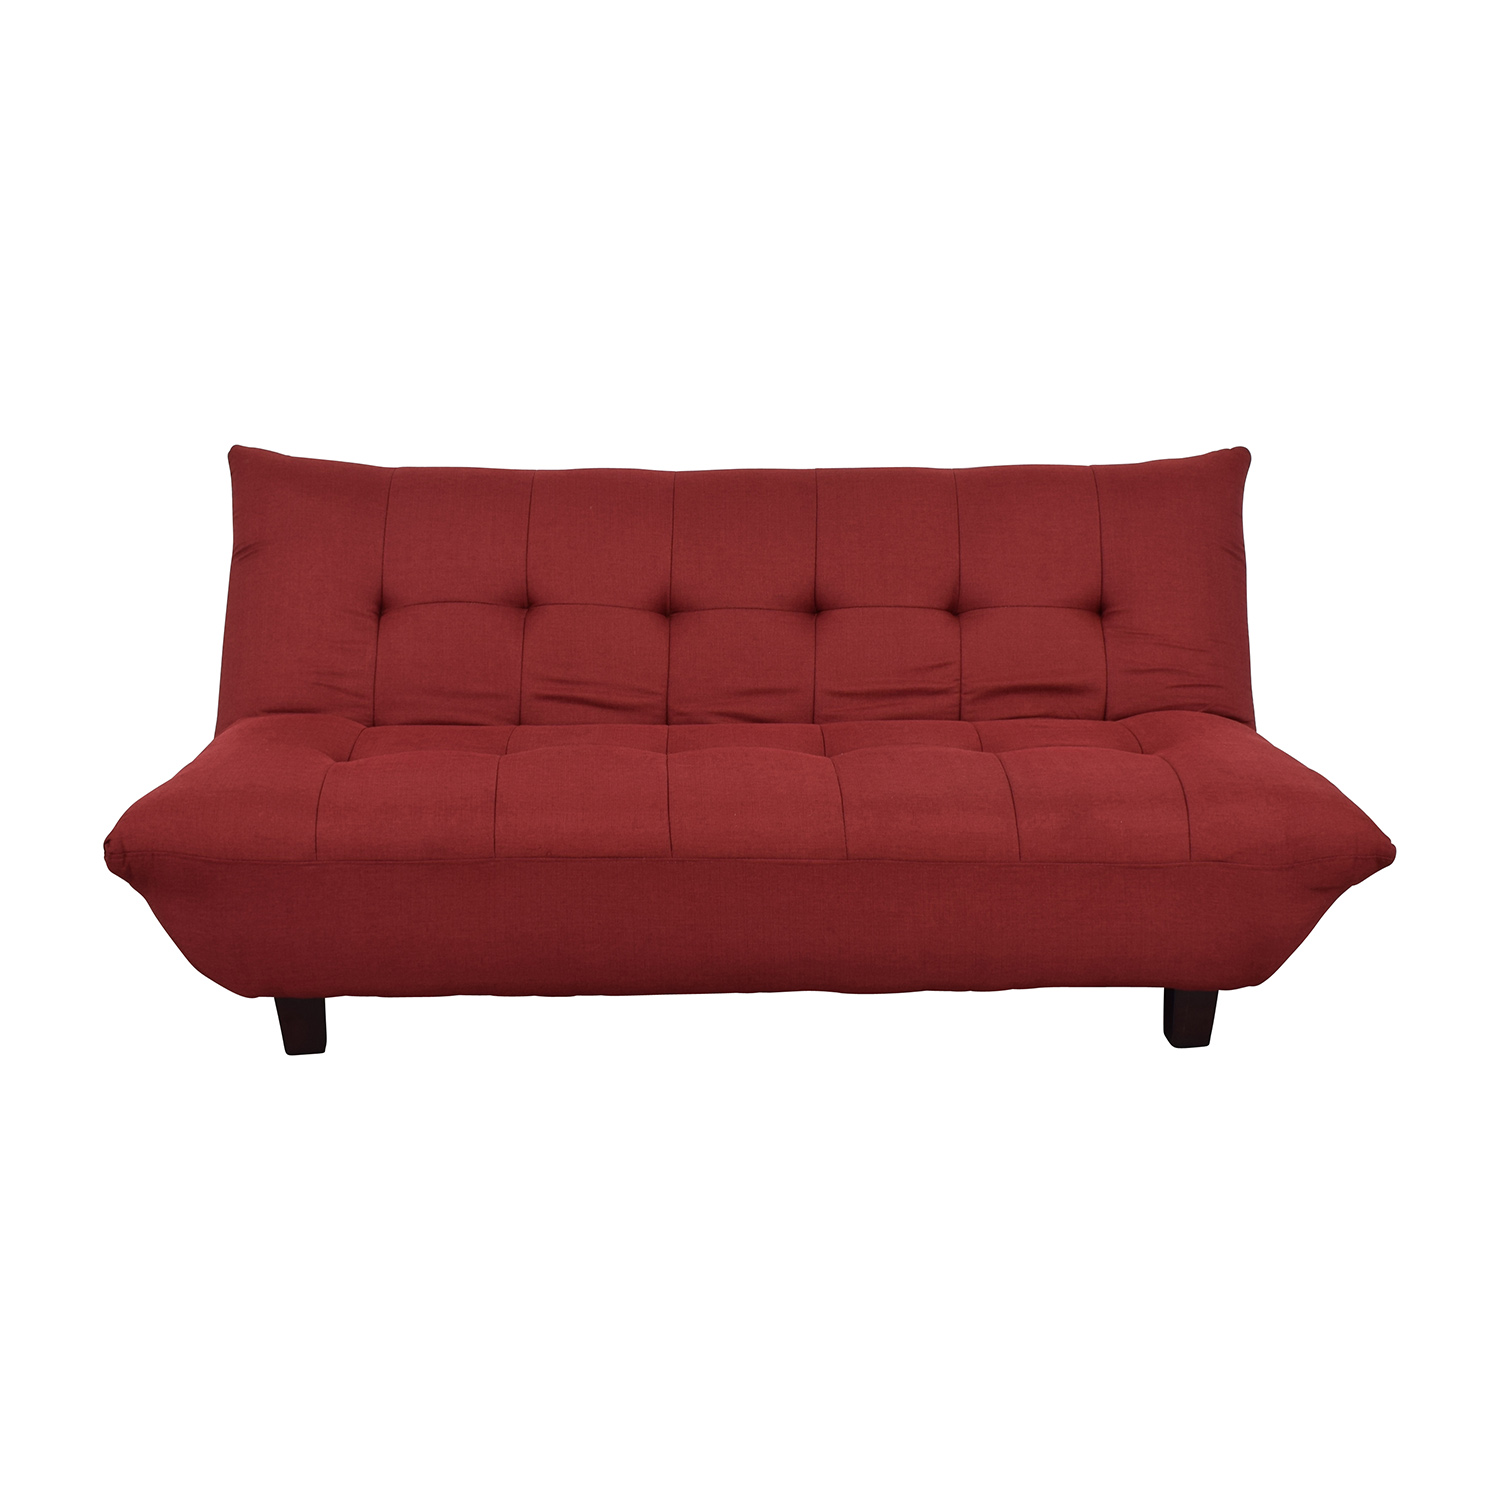 Shop Red Tufted Futon Sofa Bed Sofas